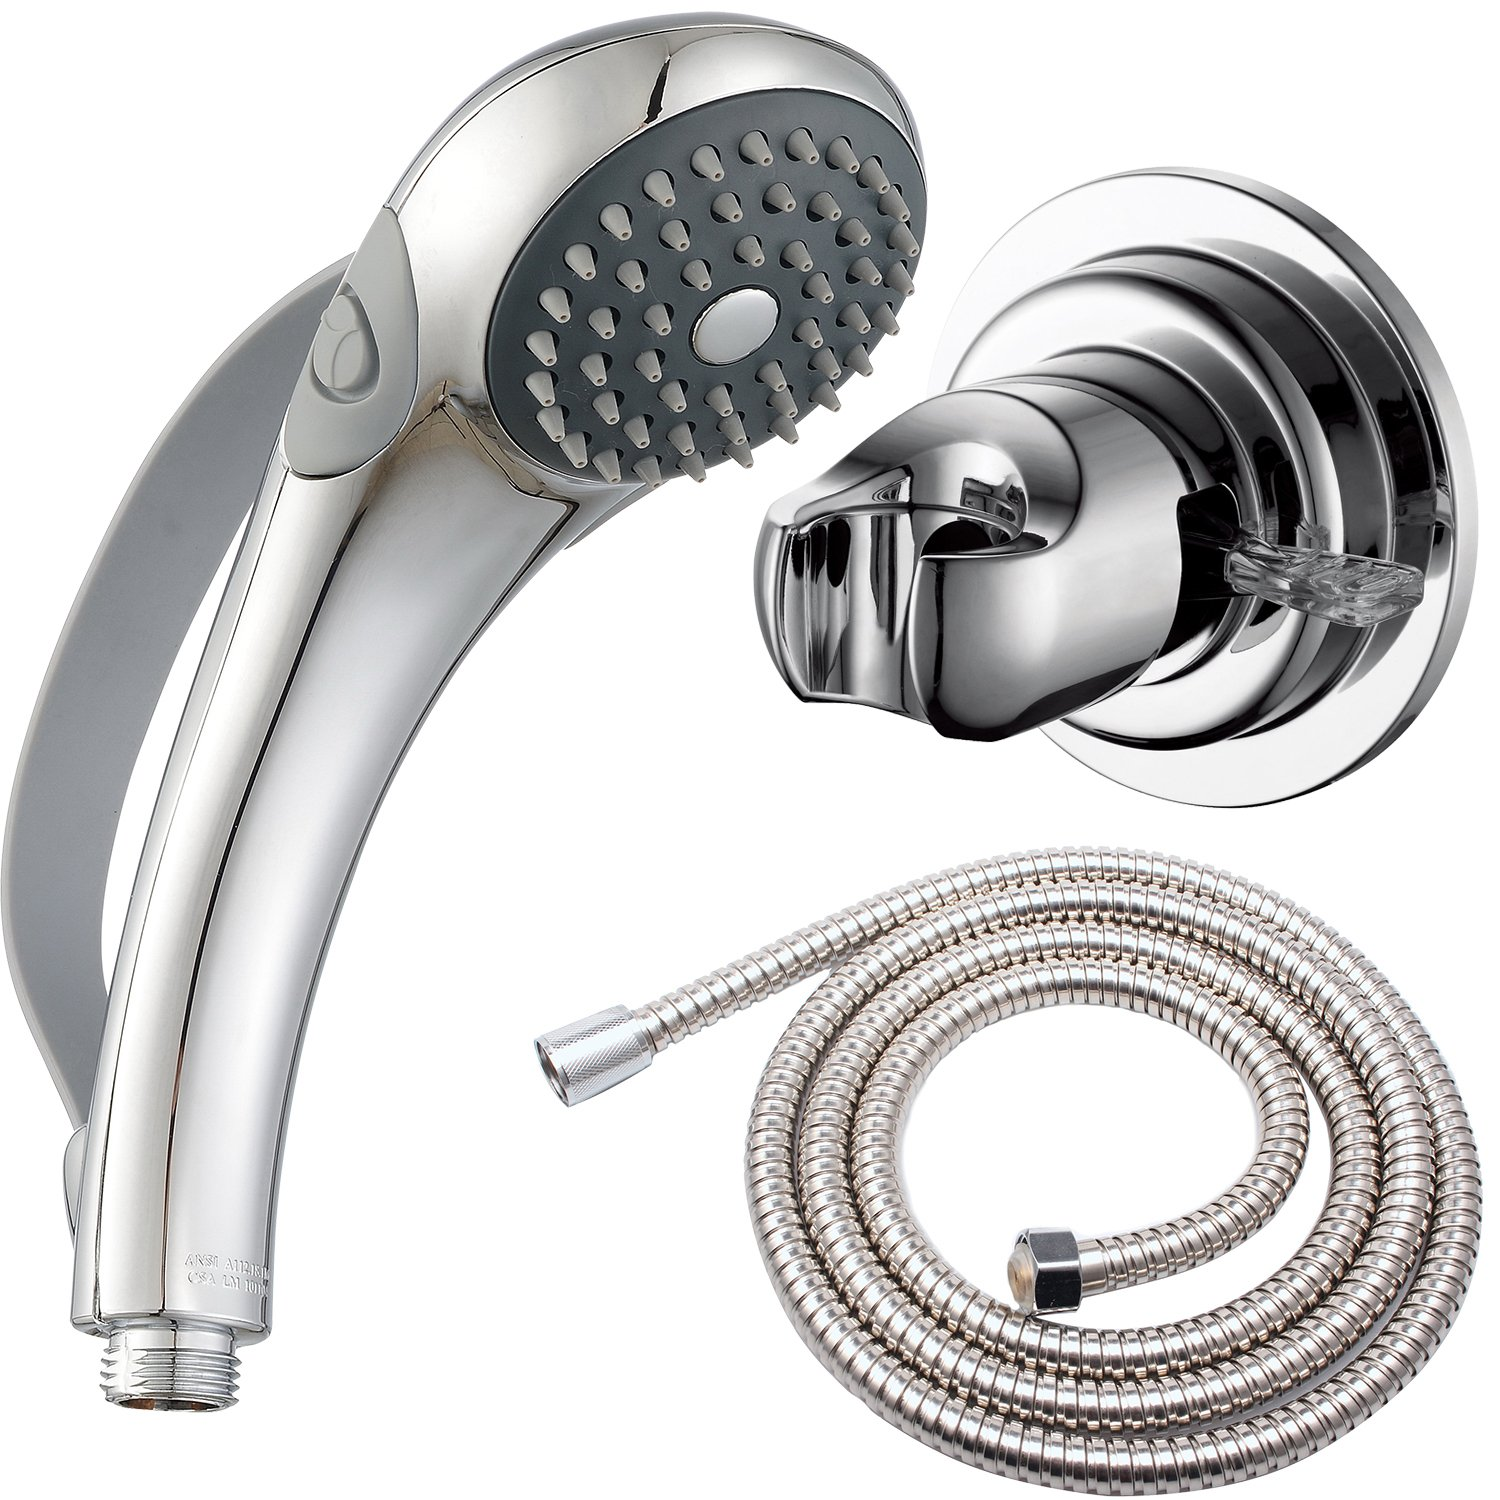 Deliao Handheld Shower Head Set With 79-Inch Shower Hose And Suciton Cup Holder Bracket Home Care Control Button And Convenient Push Button Designed For Disabled Elderly Children Baby Kids Or Pets AQUAmate